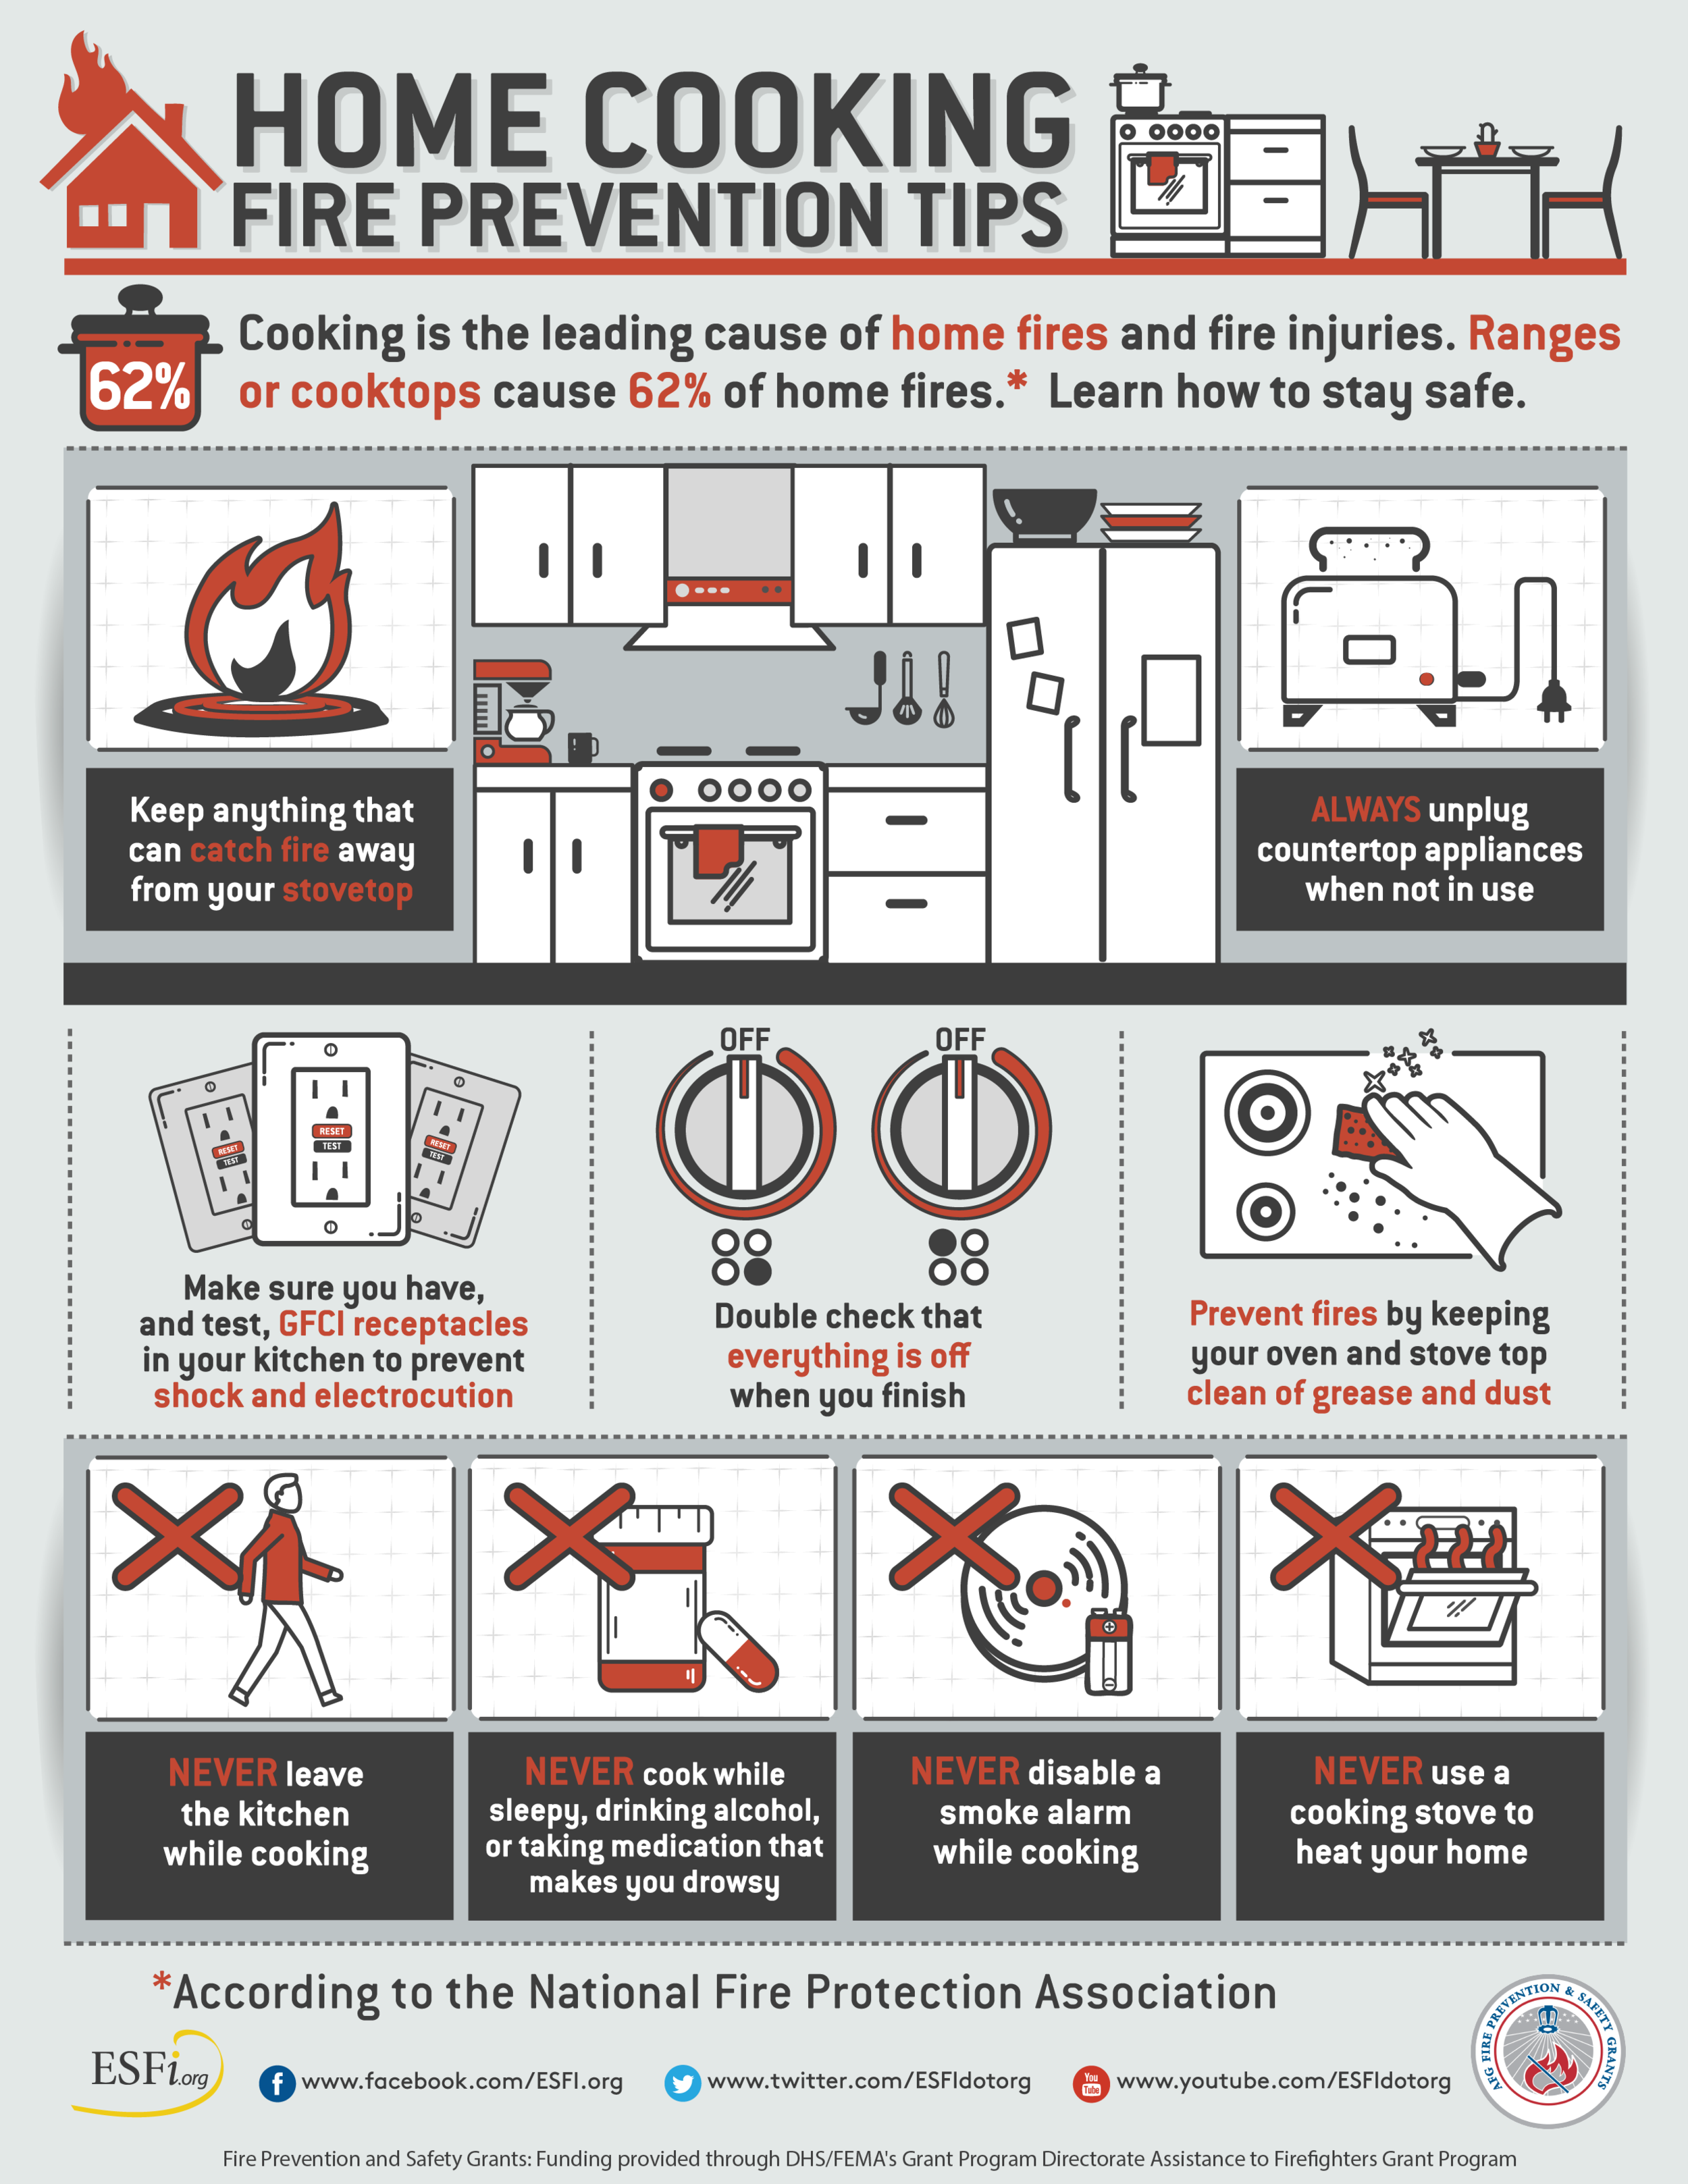 Home-Cooking-Fire-Prevention-Tips.png